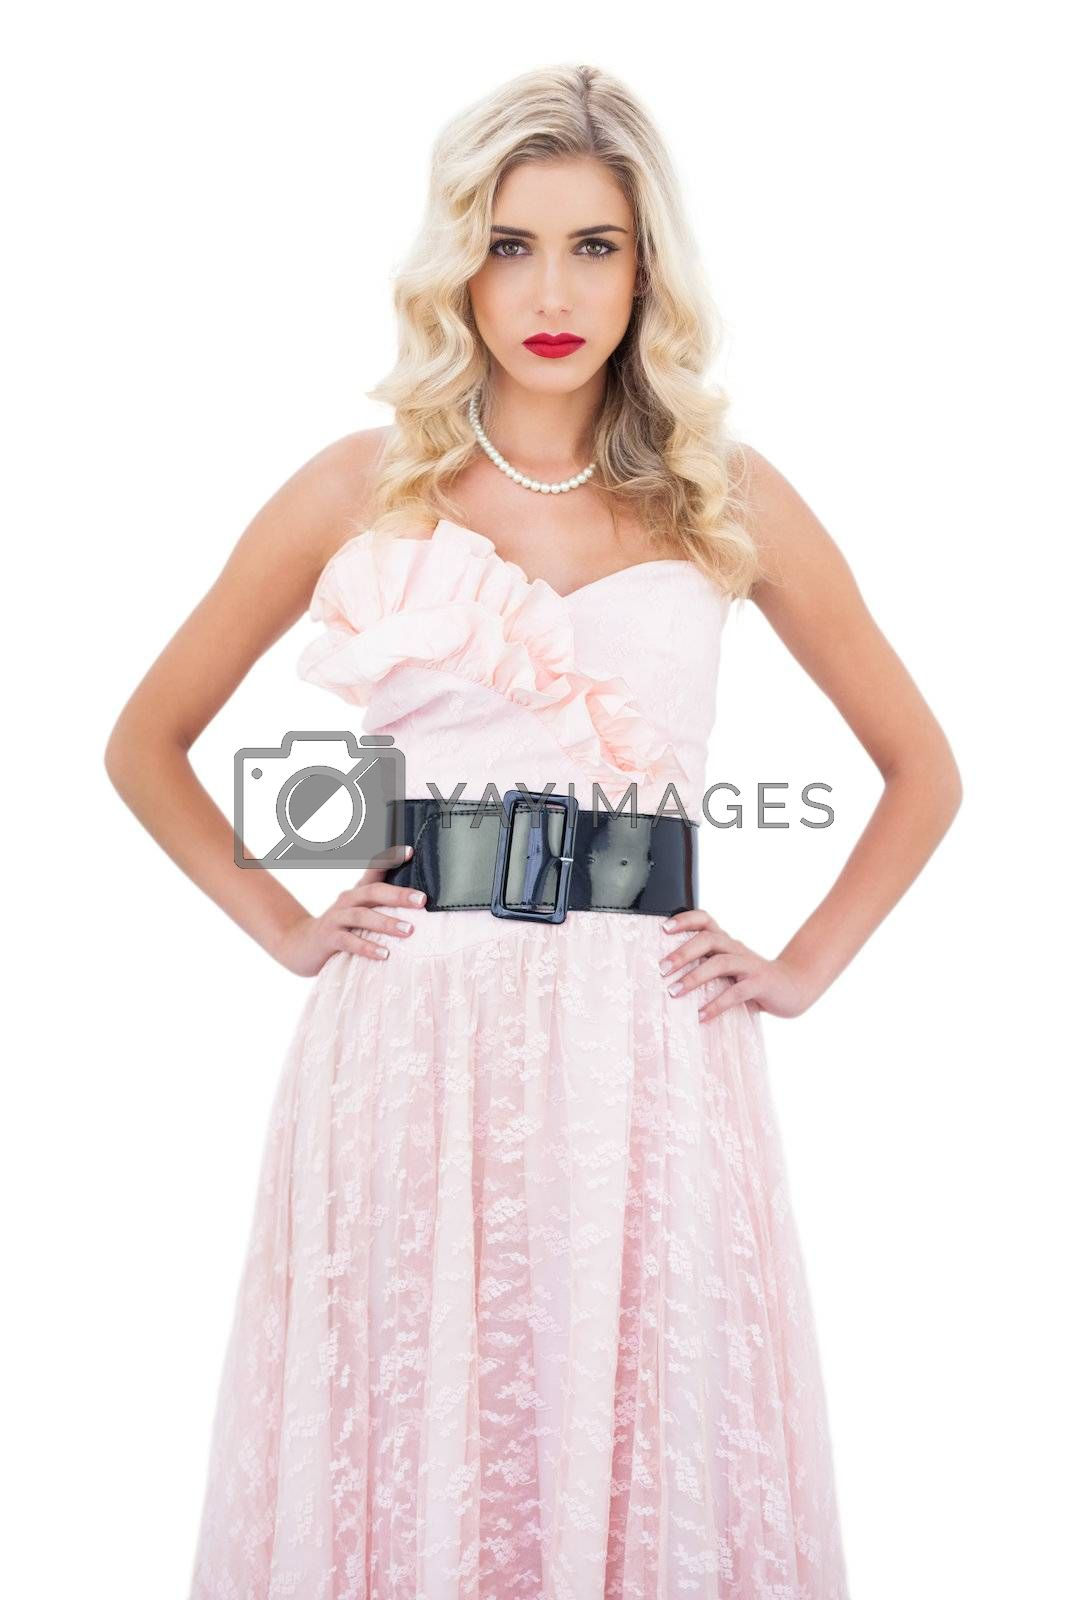 Stern blonde model in pink dress posing hands on the hips and looking at camera by Wavebreakmedia